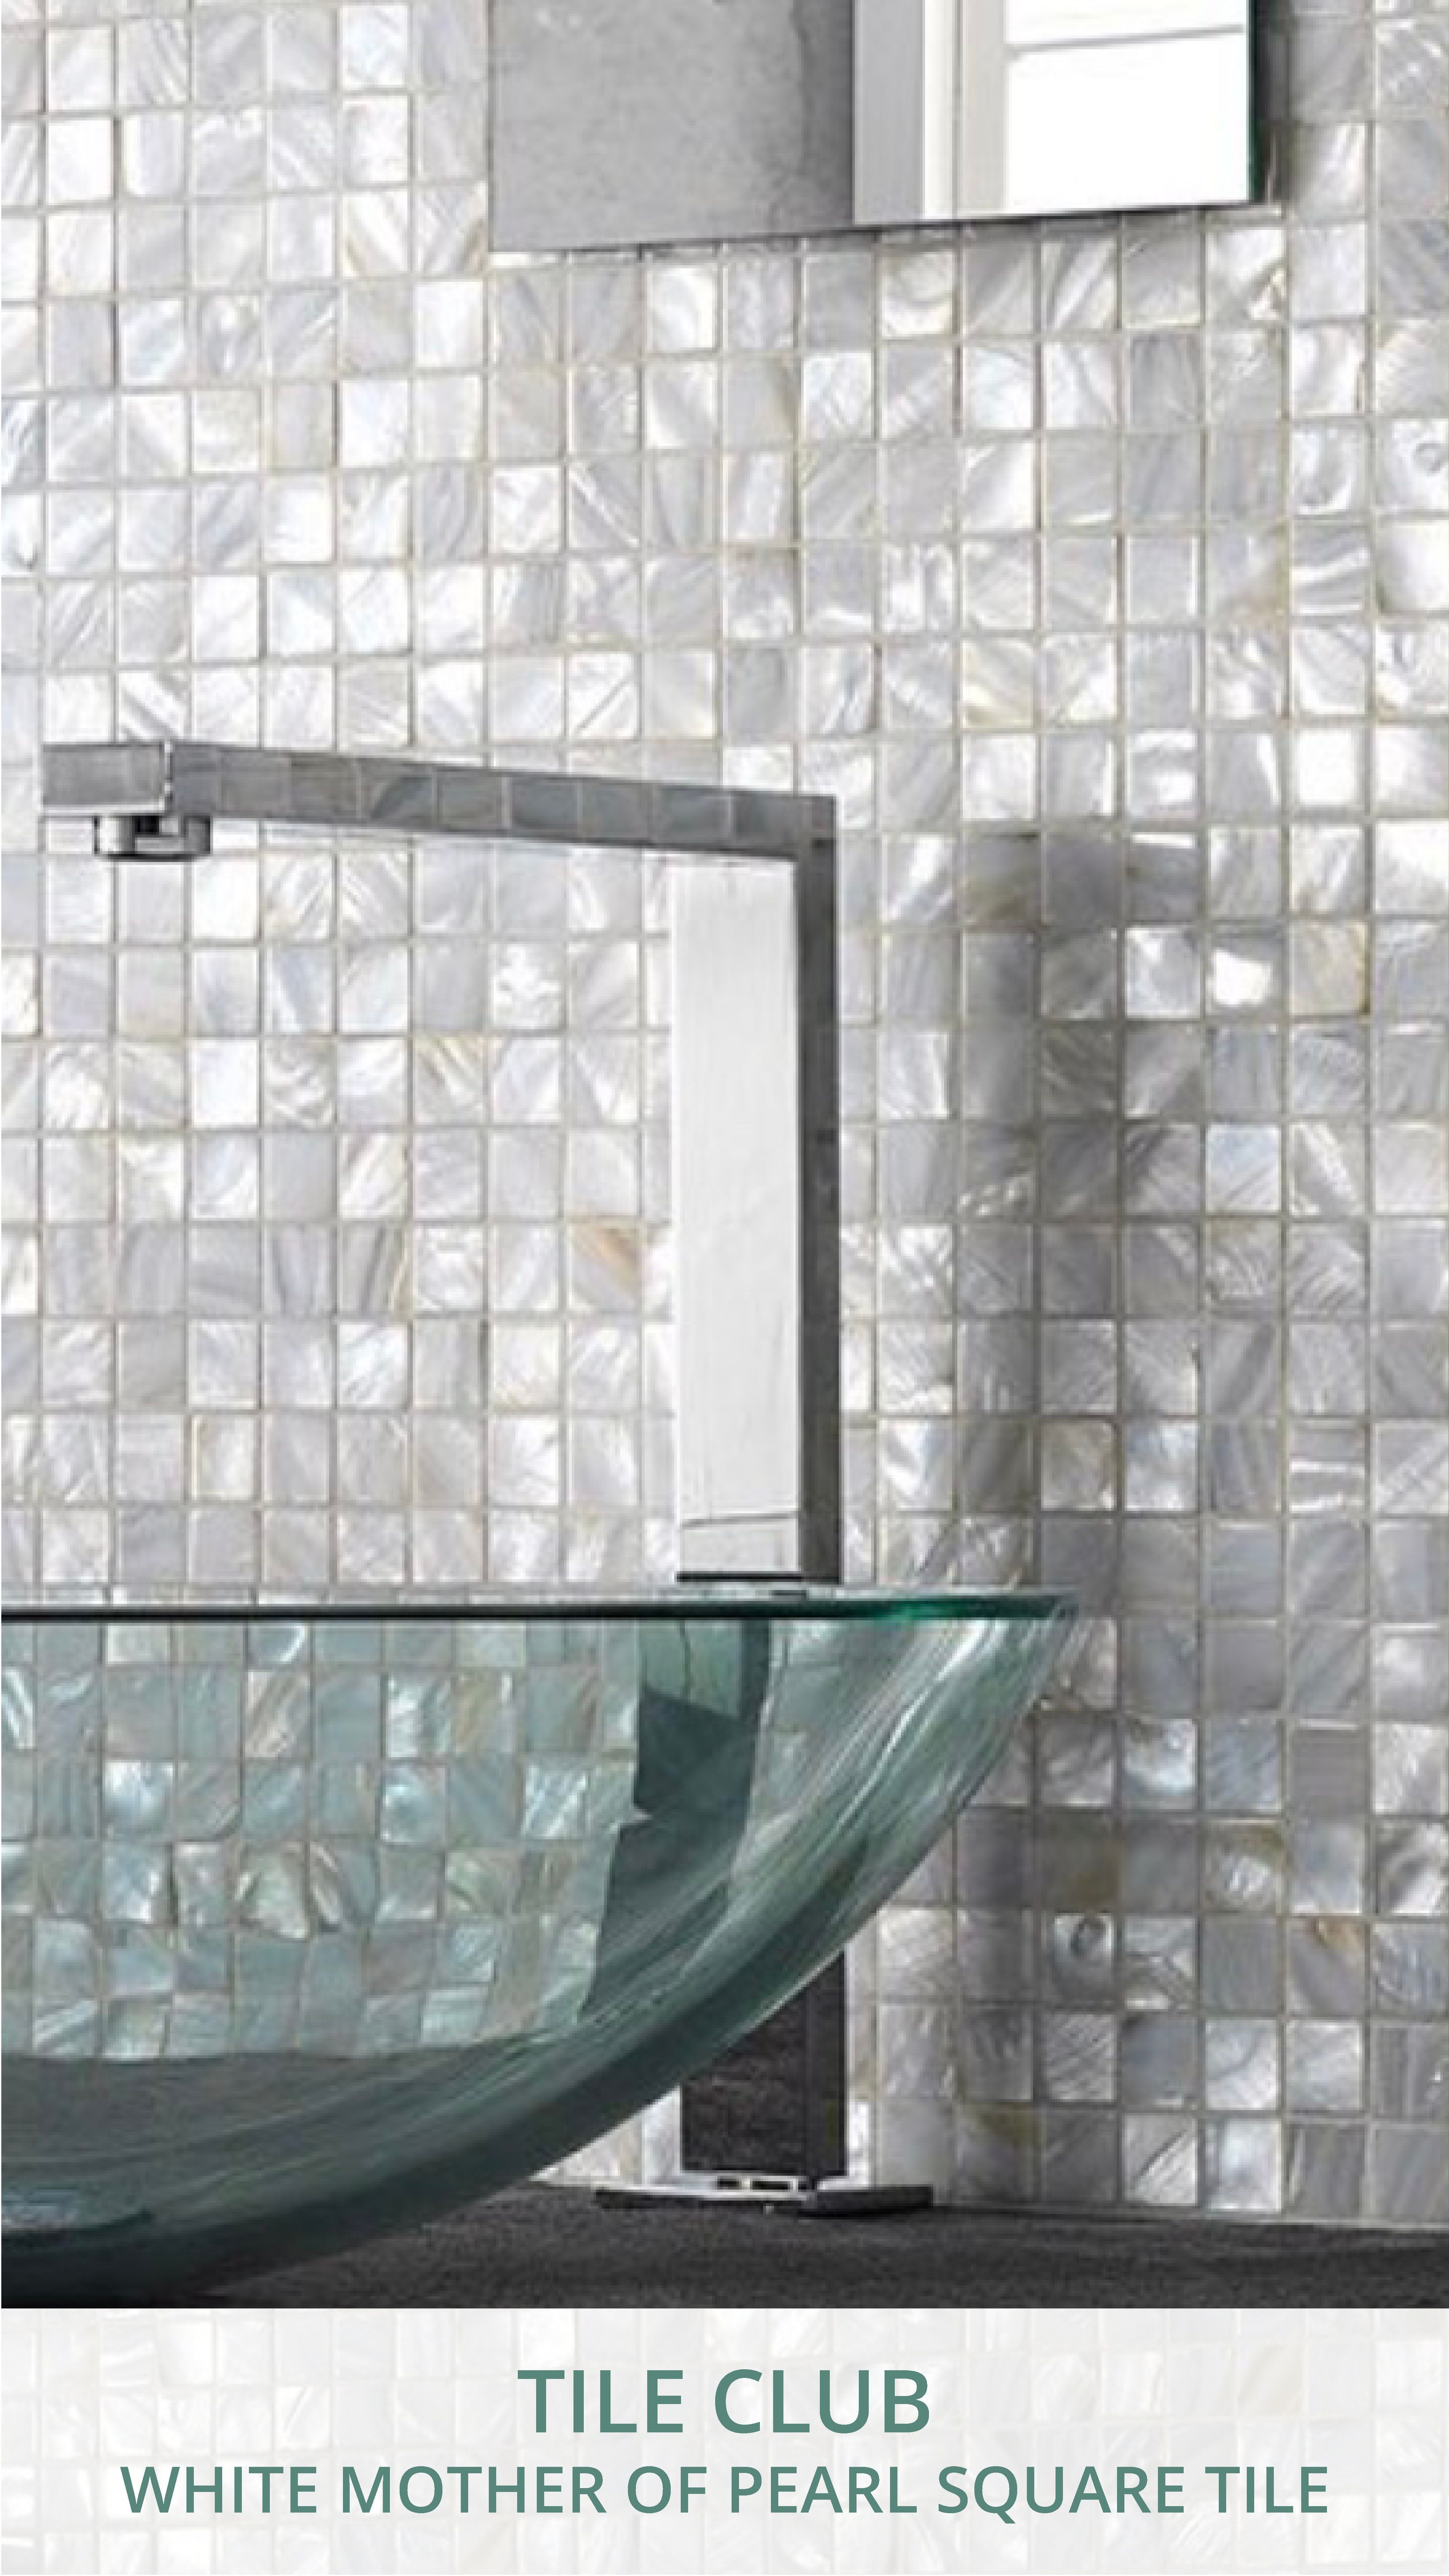 White Mother Of Pearl 1 Luxury House Designs Pearl Tile Modern Interior Design